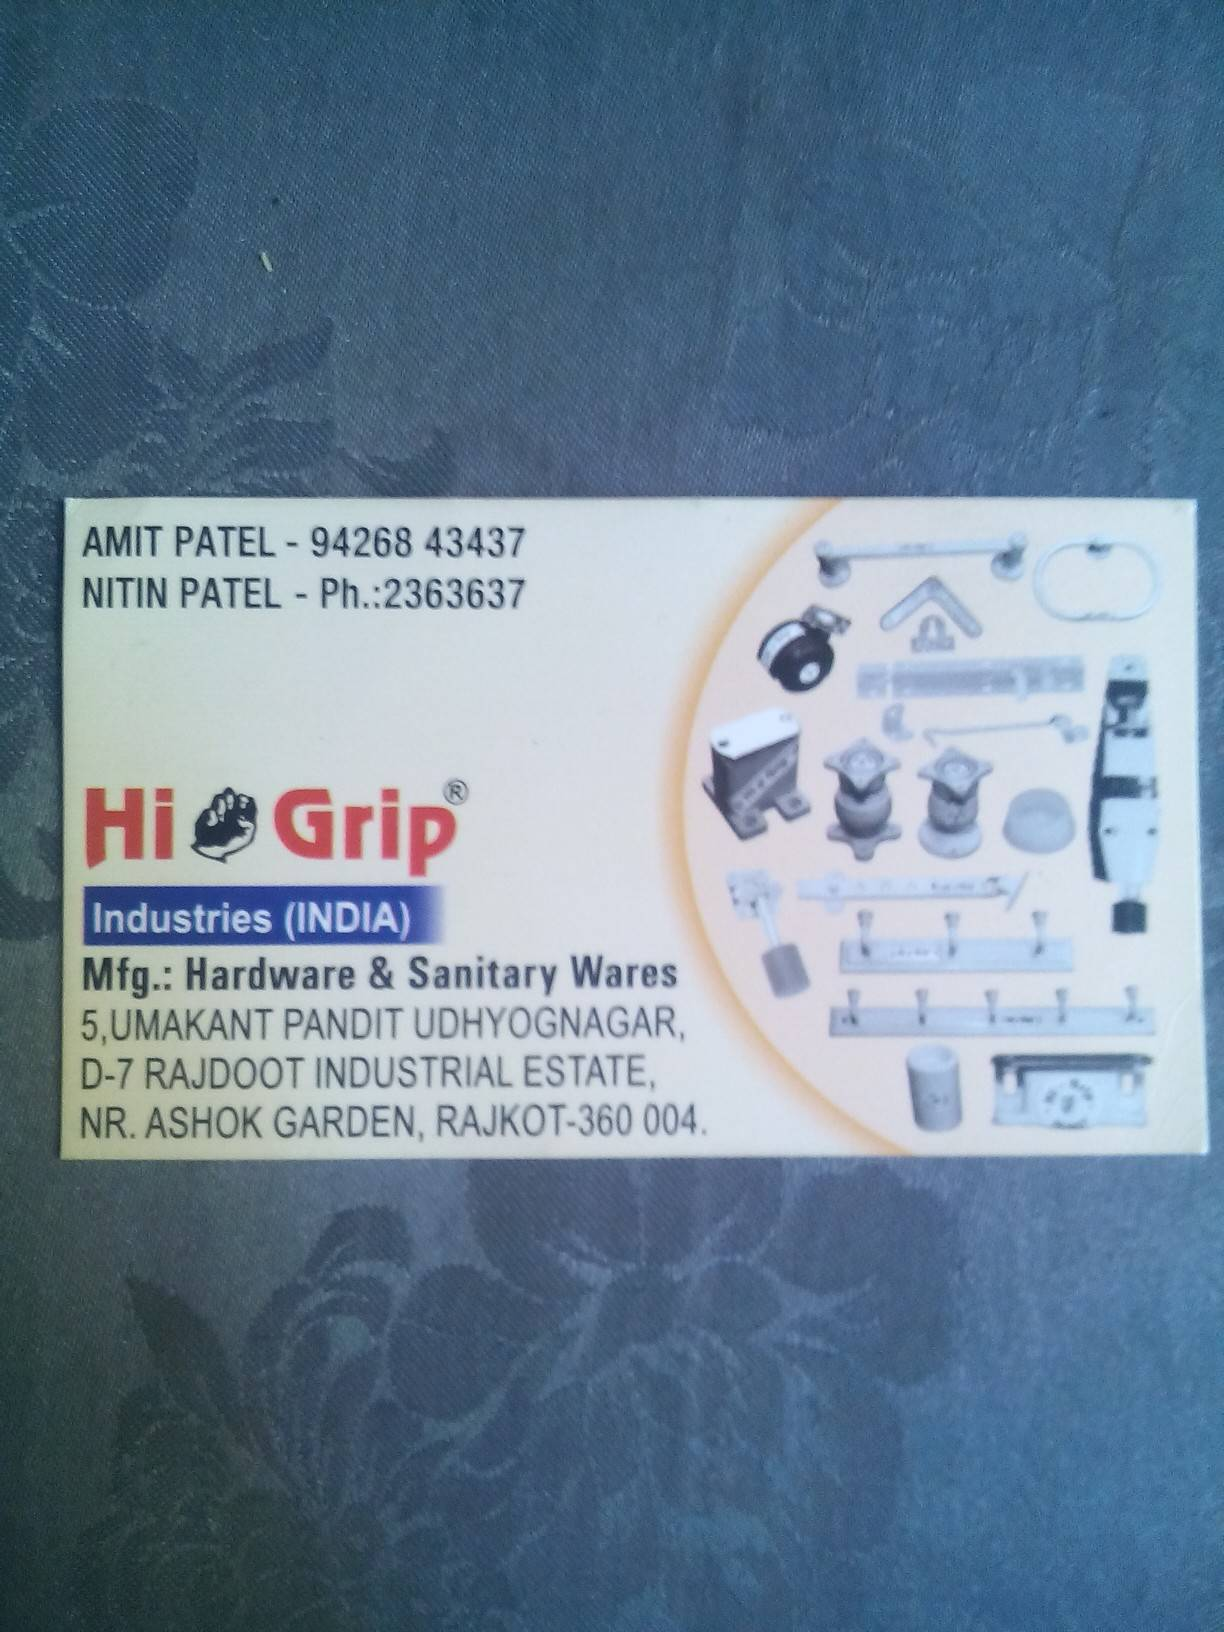 Hi Grip Industries